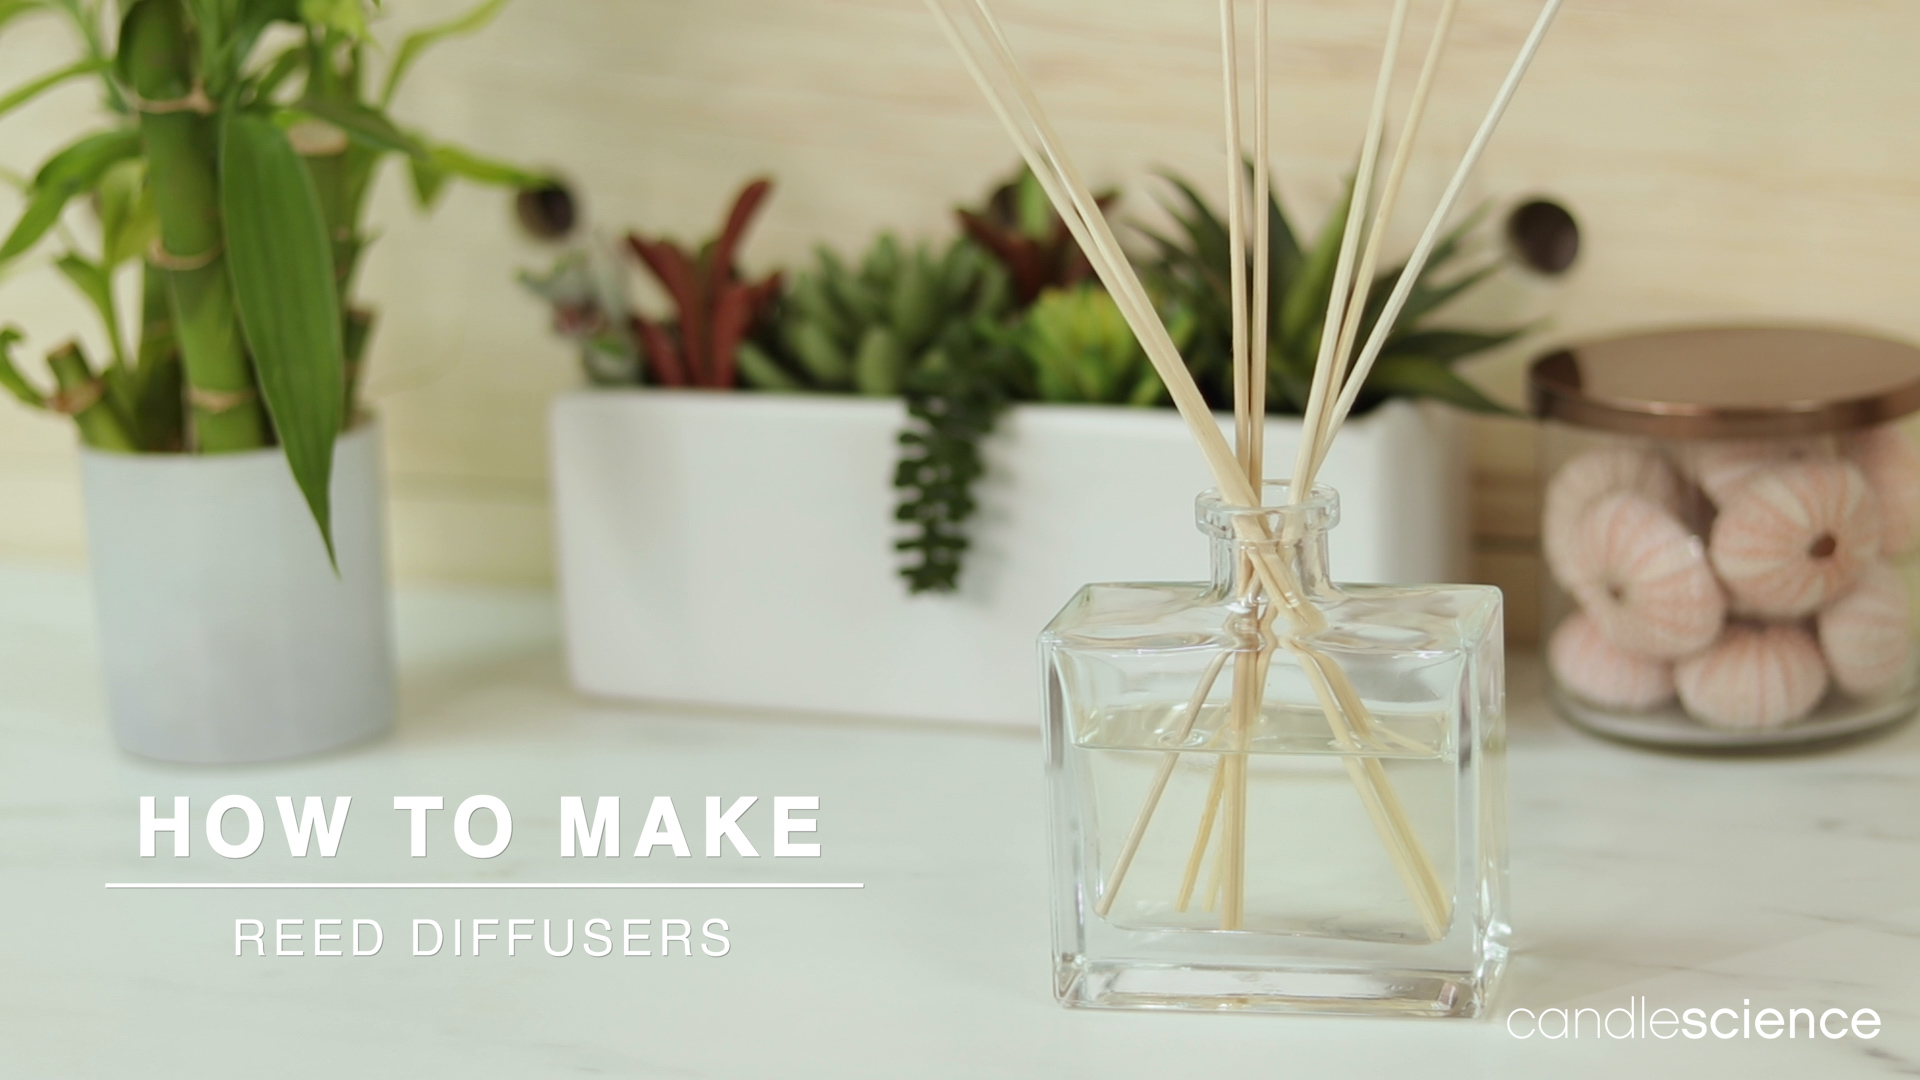 How to make reed diffuser video guide